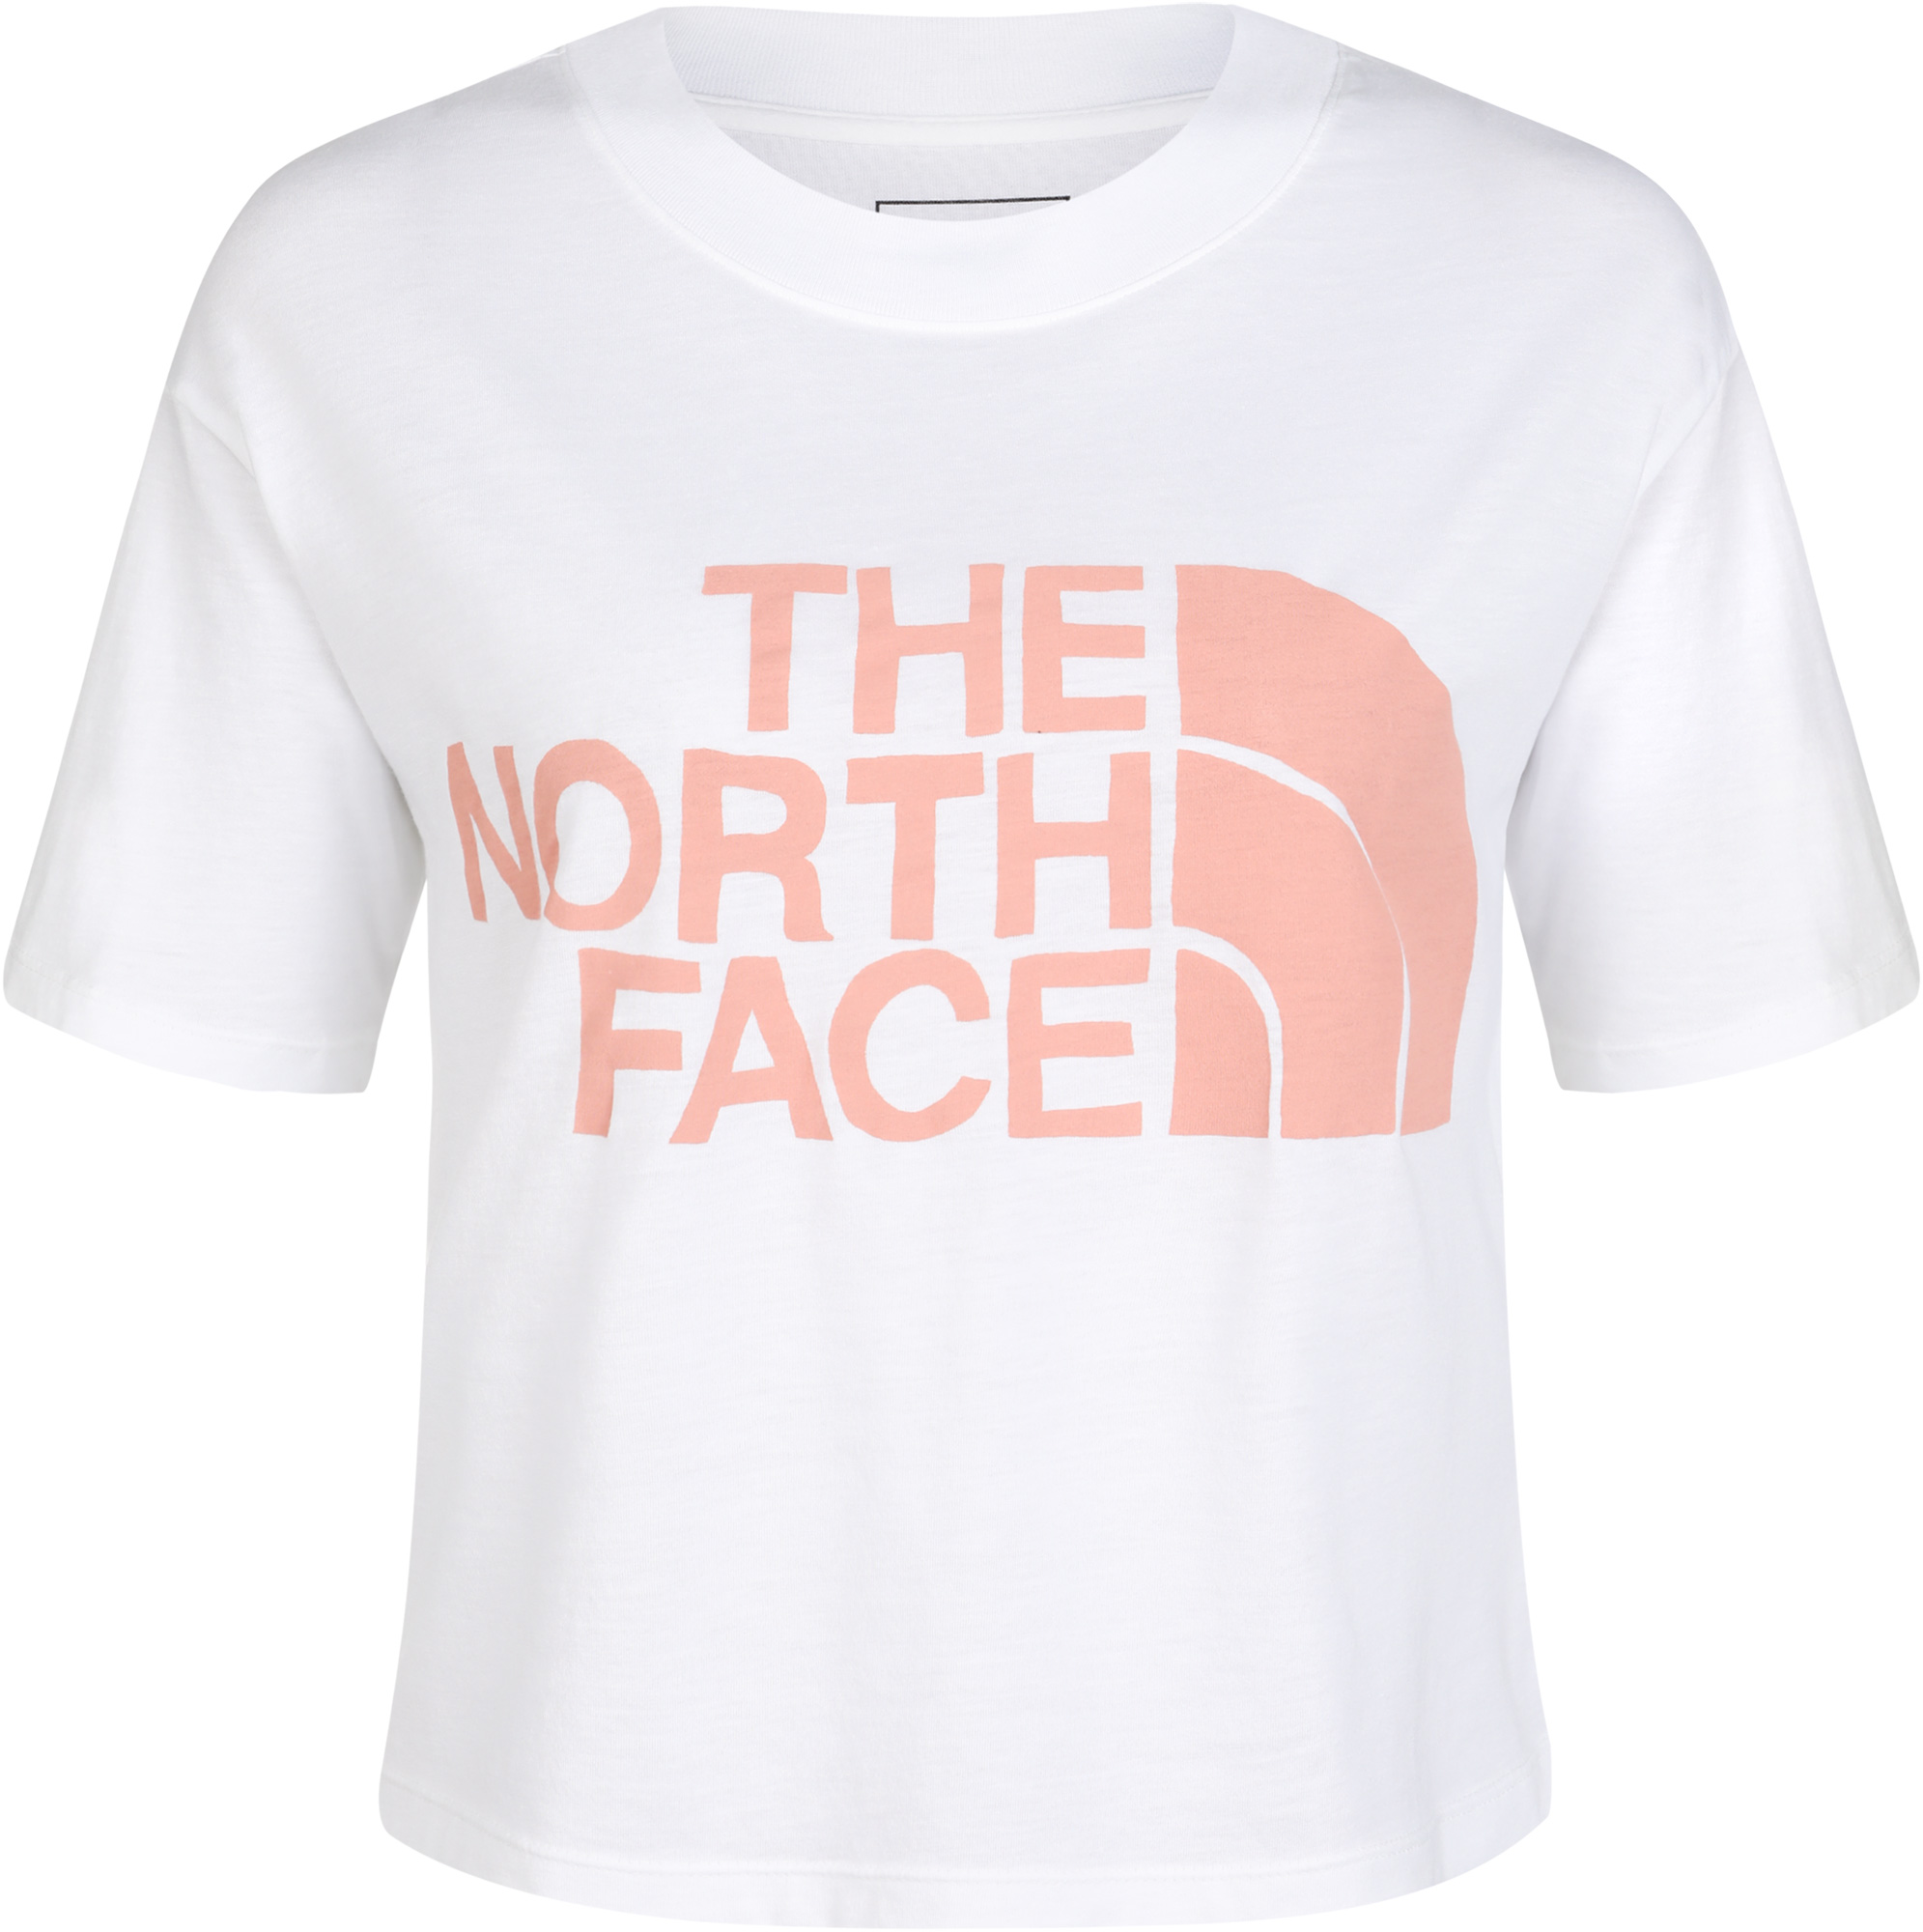 The North Face Футболка женская The North Face, размер 44 недорого